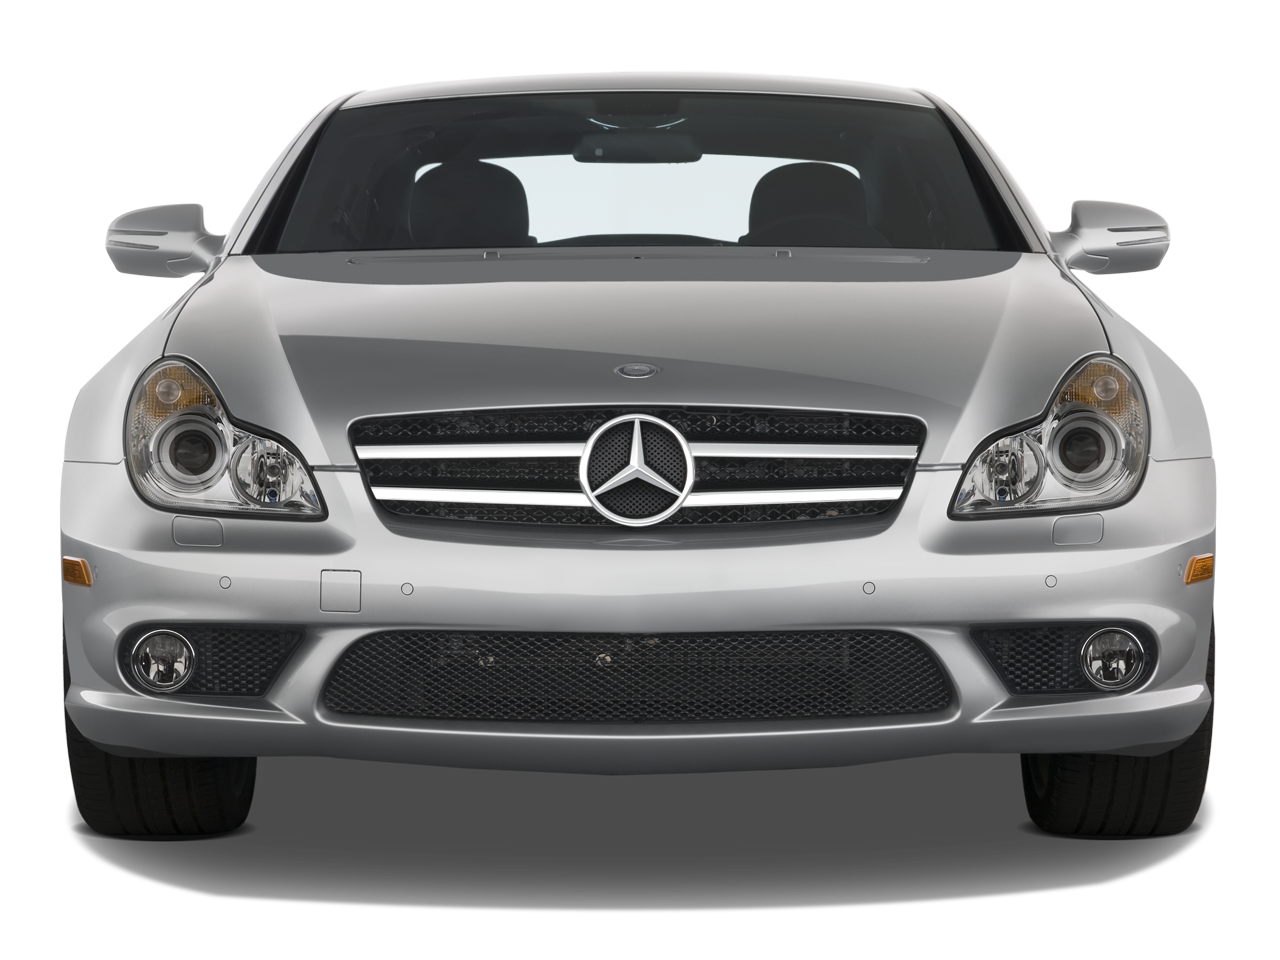 2009 mercedes benz cls550 mercedes benz luxury sedan. Black Bedroom Furniture Sets. Home Design Ideas